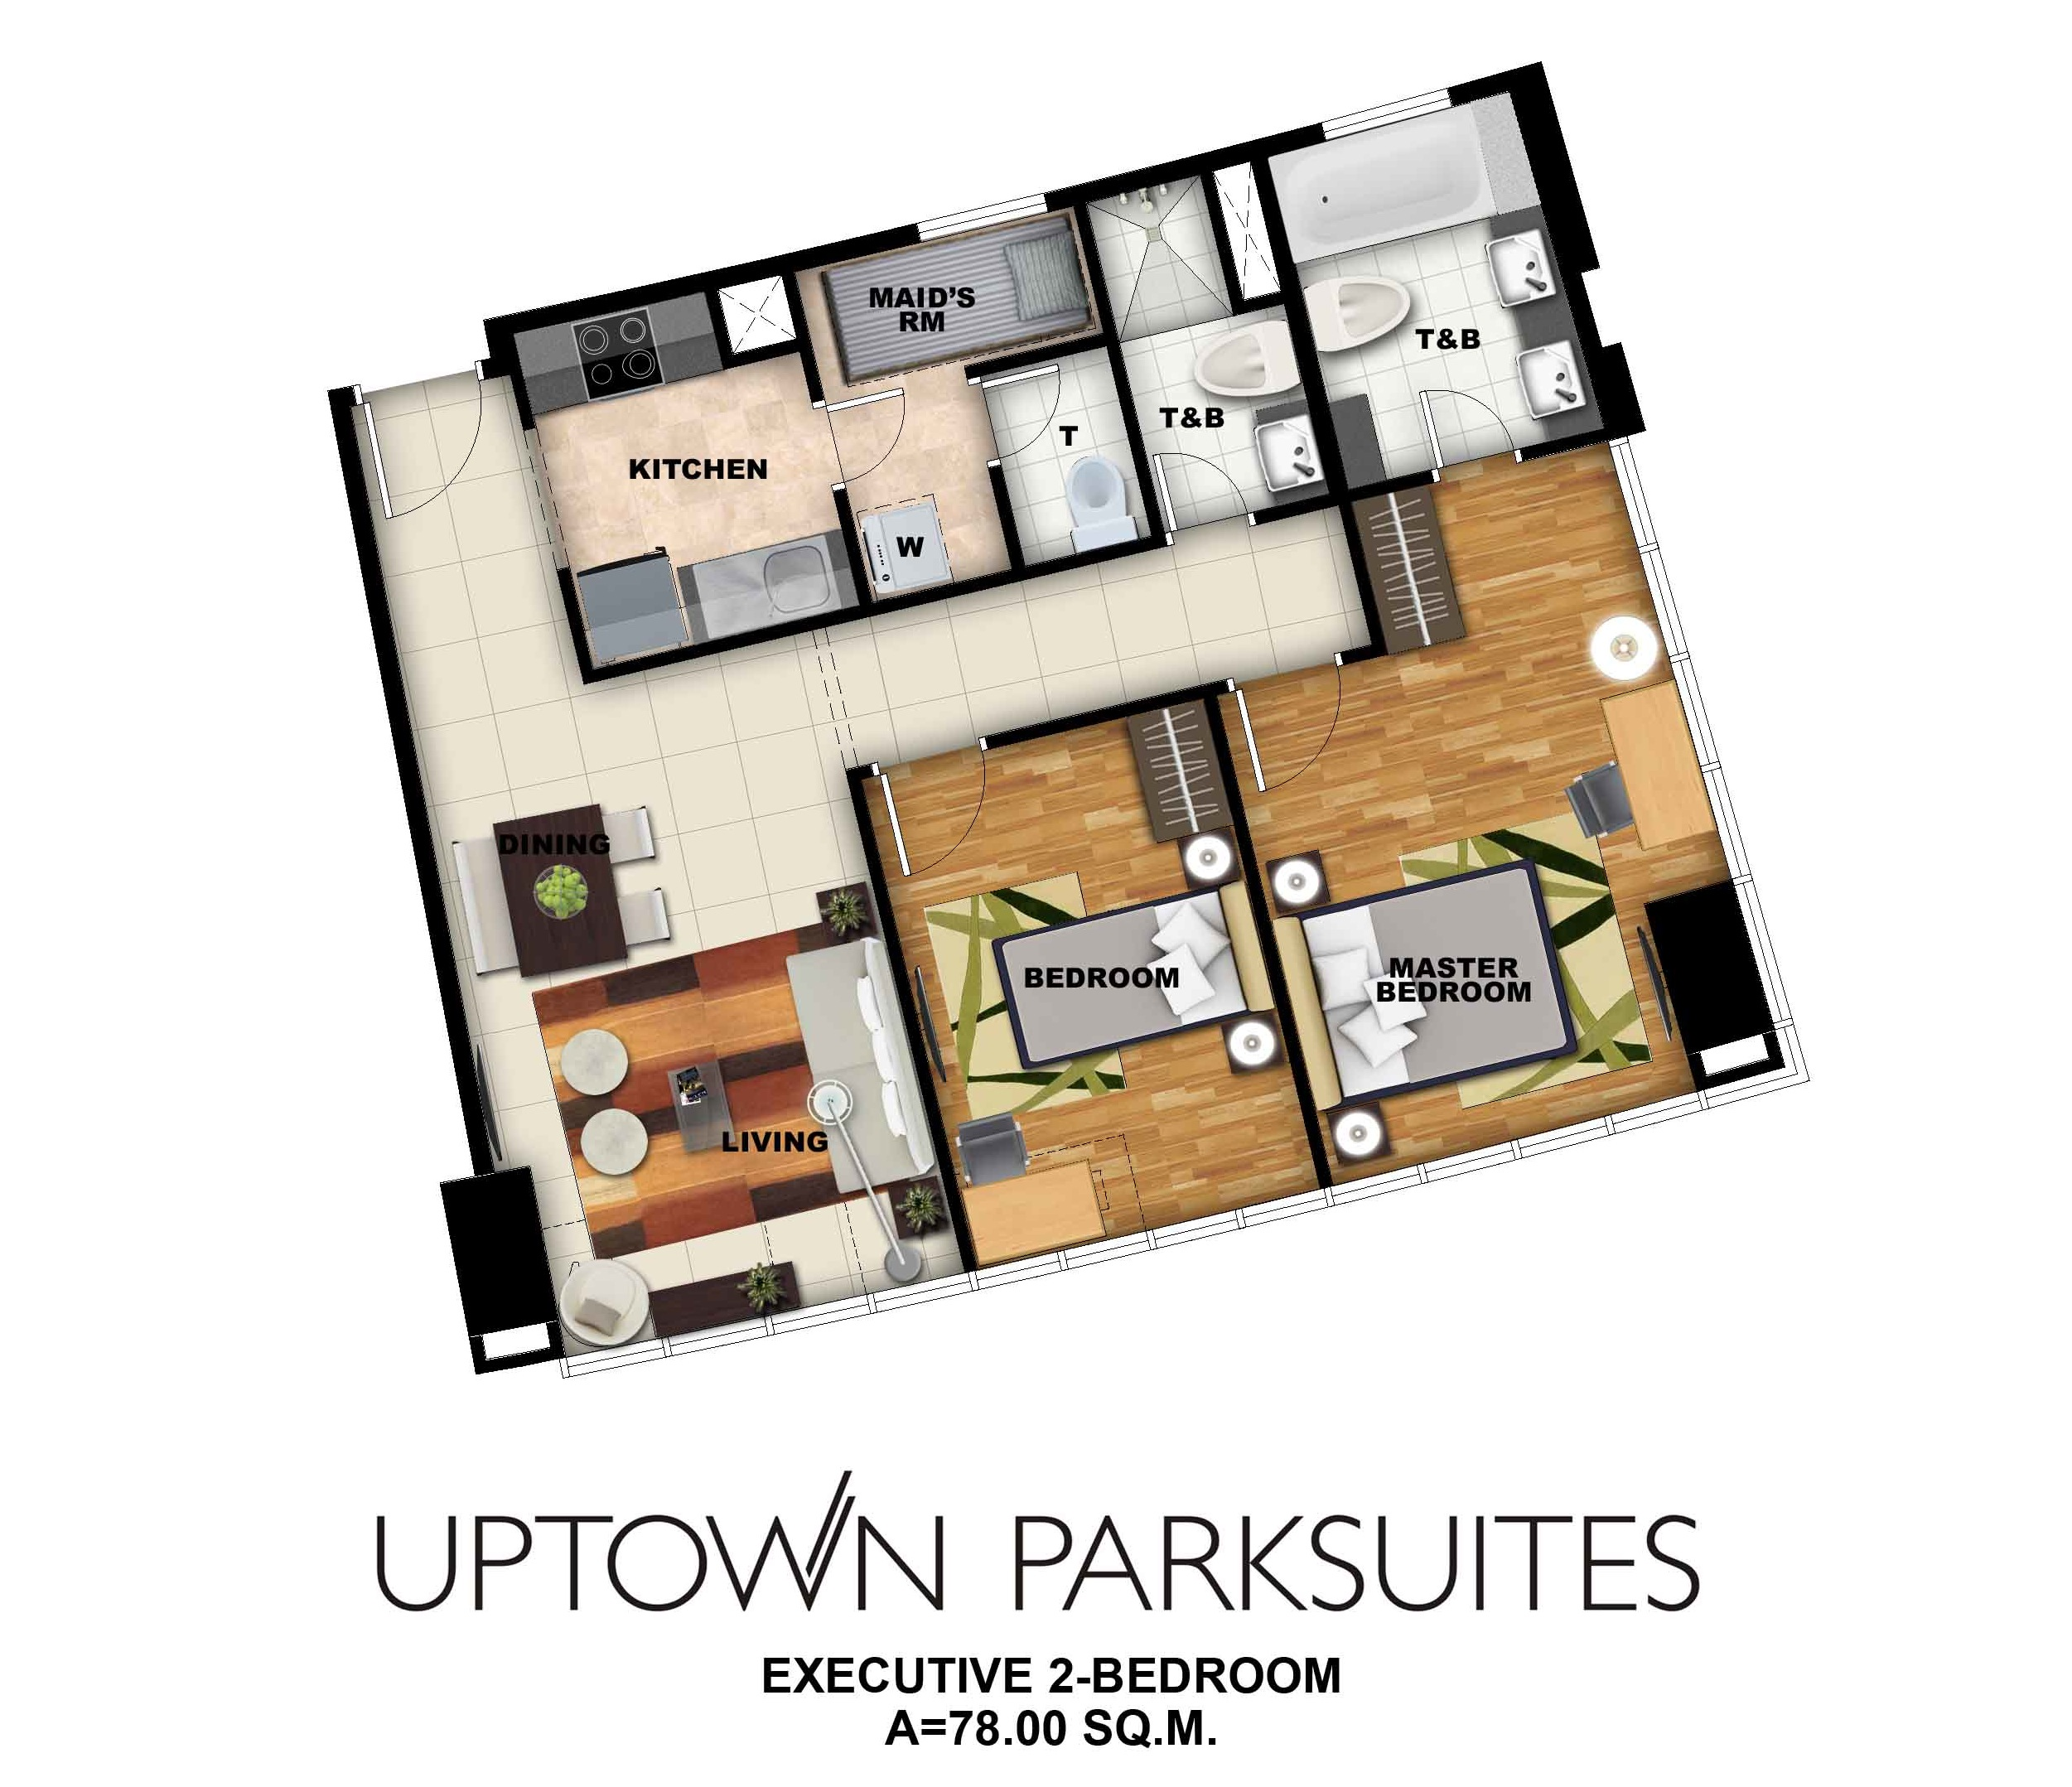 Uptown parksuites 2 bedroom executive